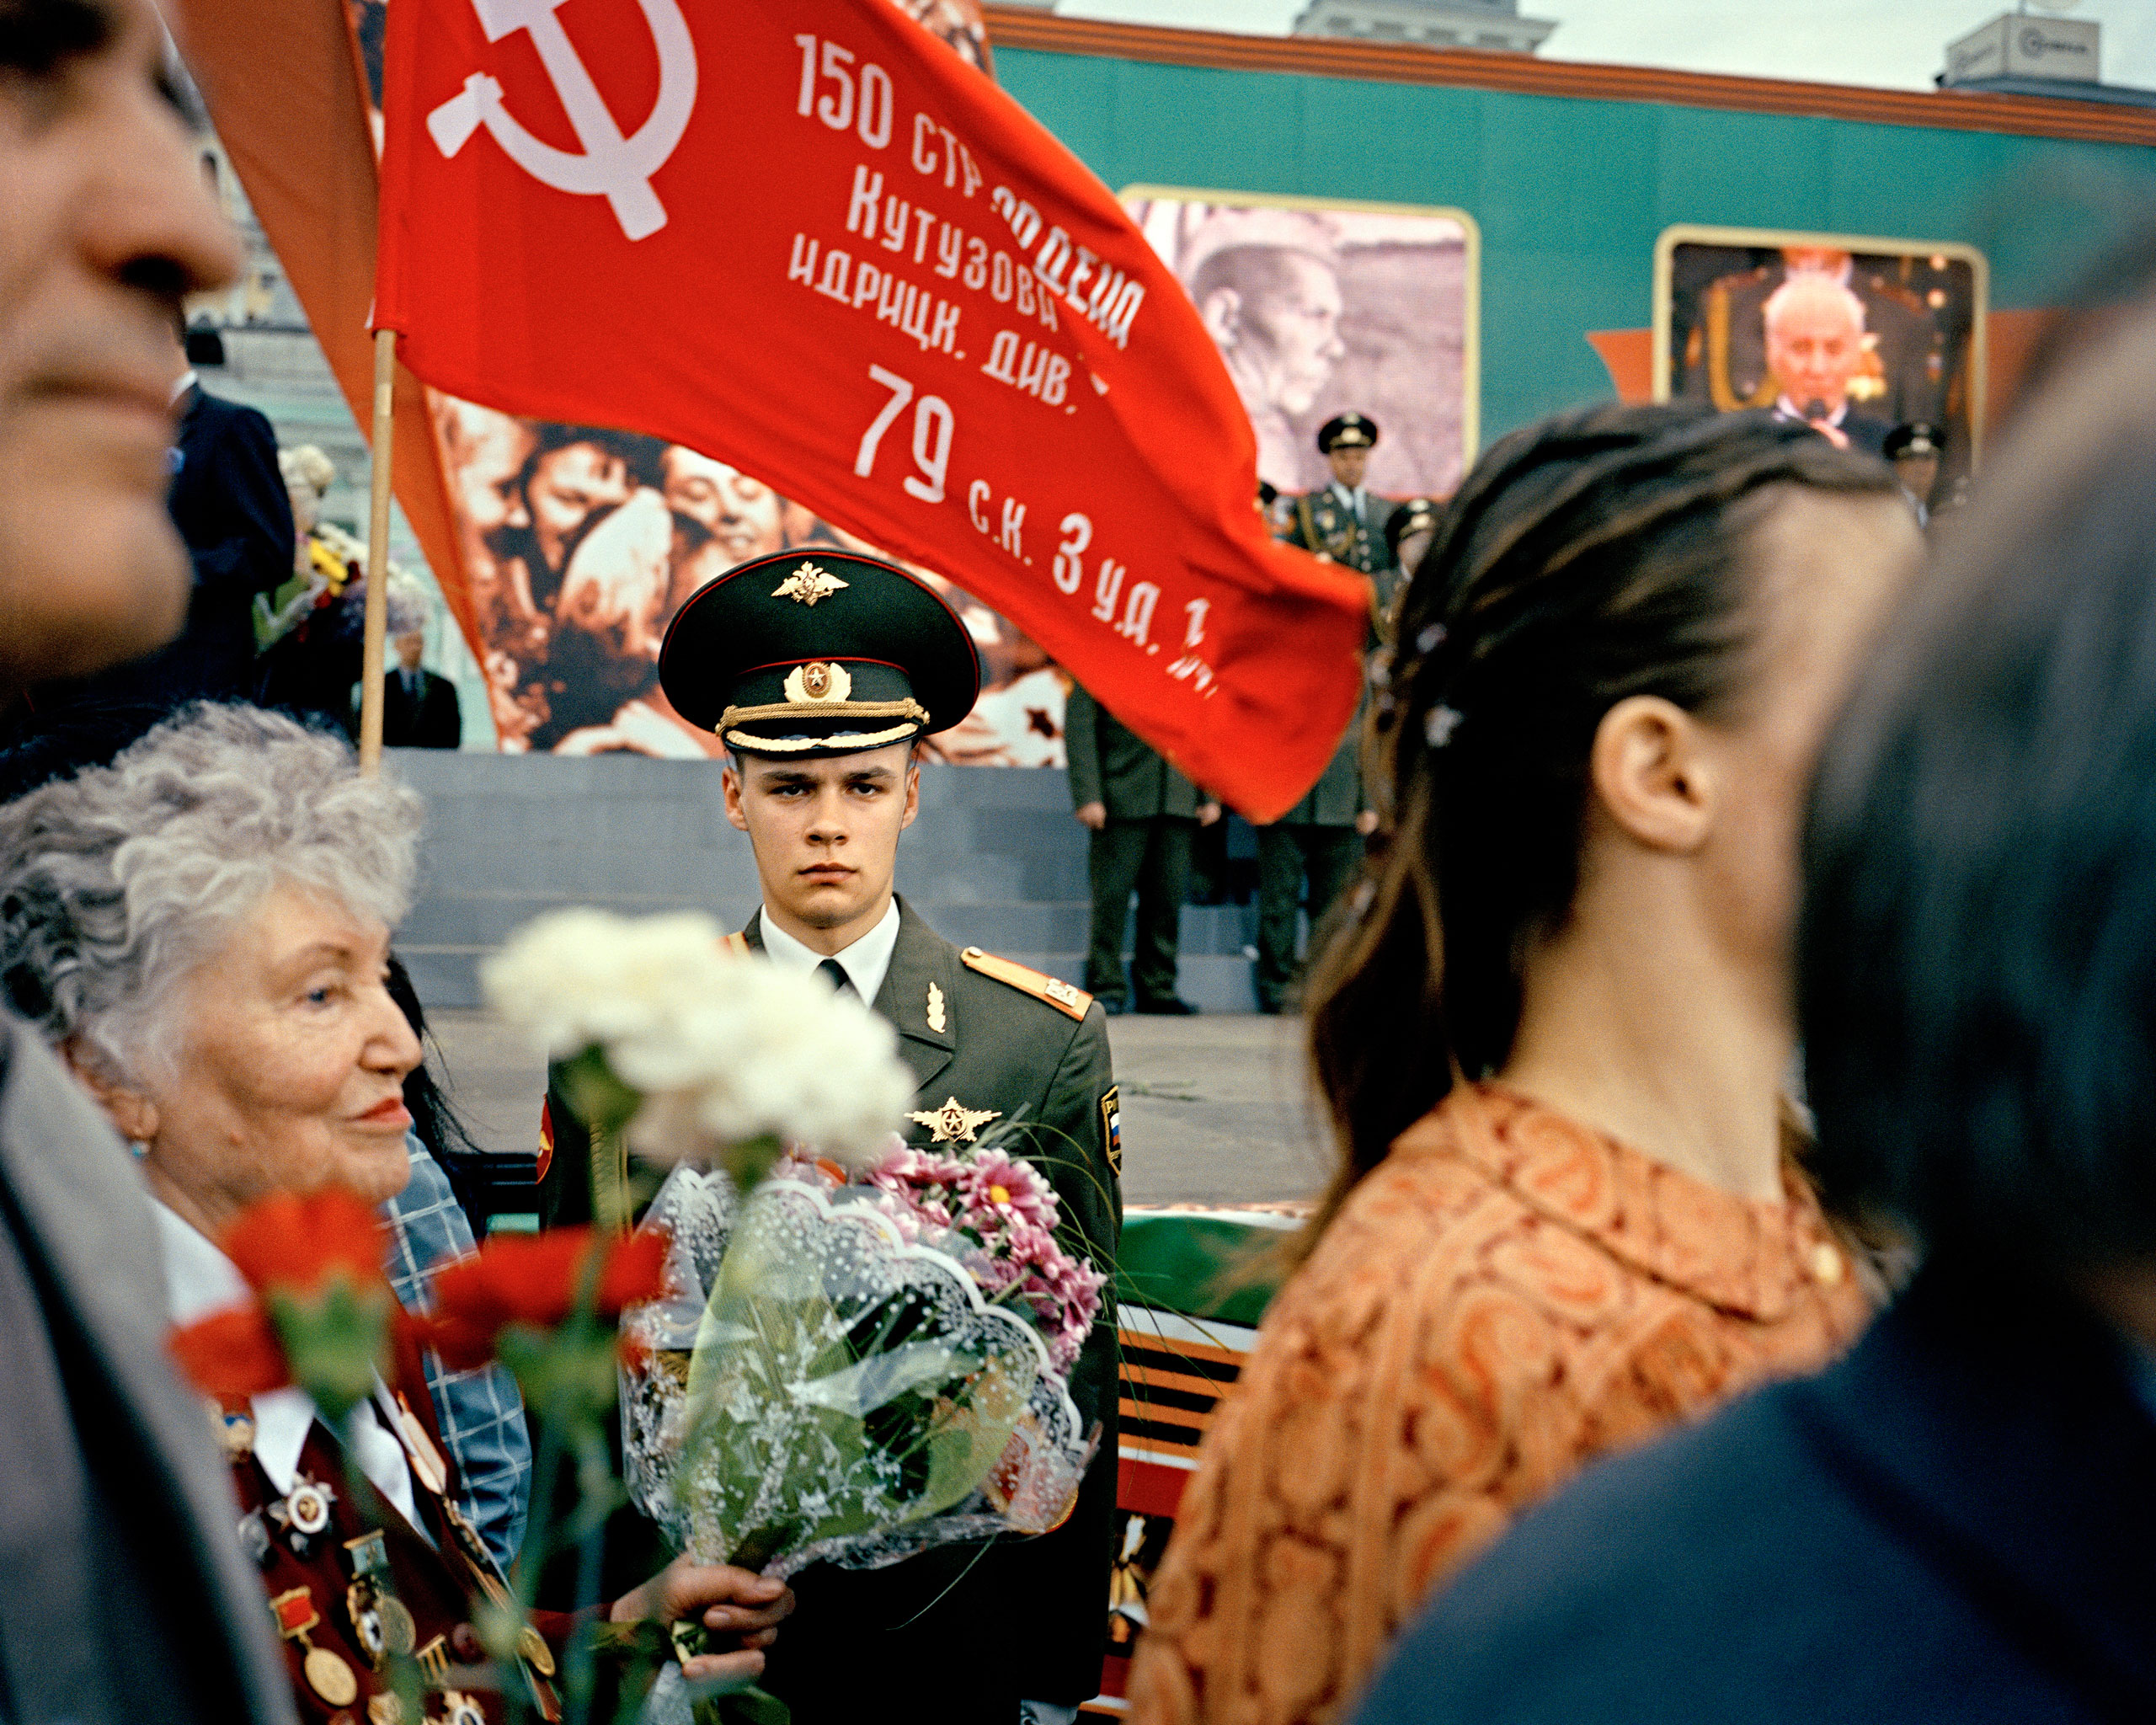 Moscow, 60th anniversary of the end of WWII, 2005                               A young soldier and veterans at the Belorussky train station.